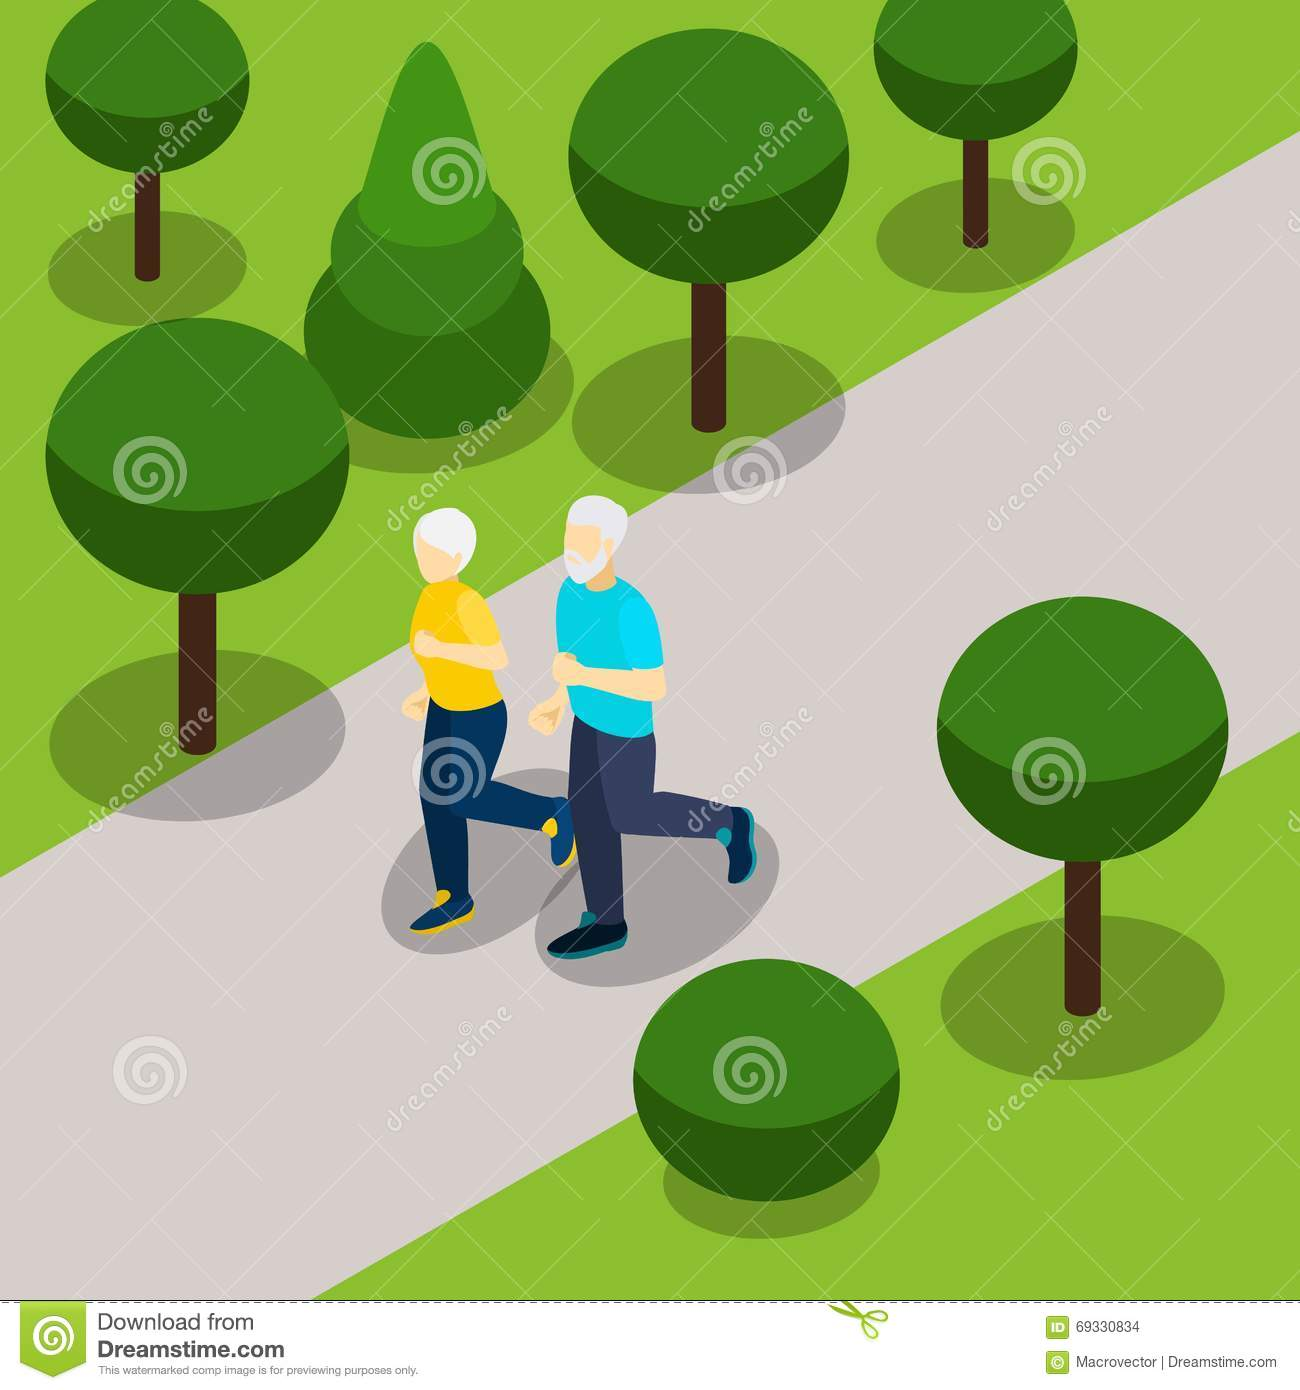 Isometric Exercises For Seniors: Active Retirement Lifestyle Isometric Banner Stock Vector